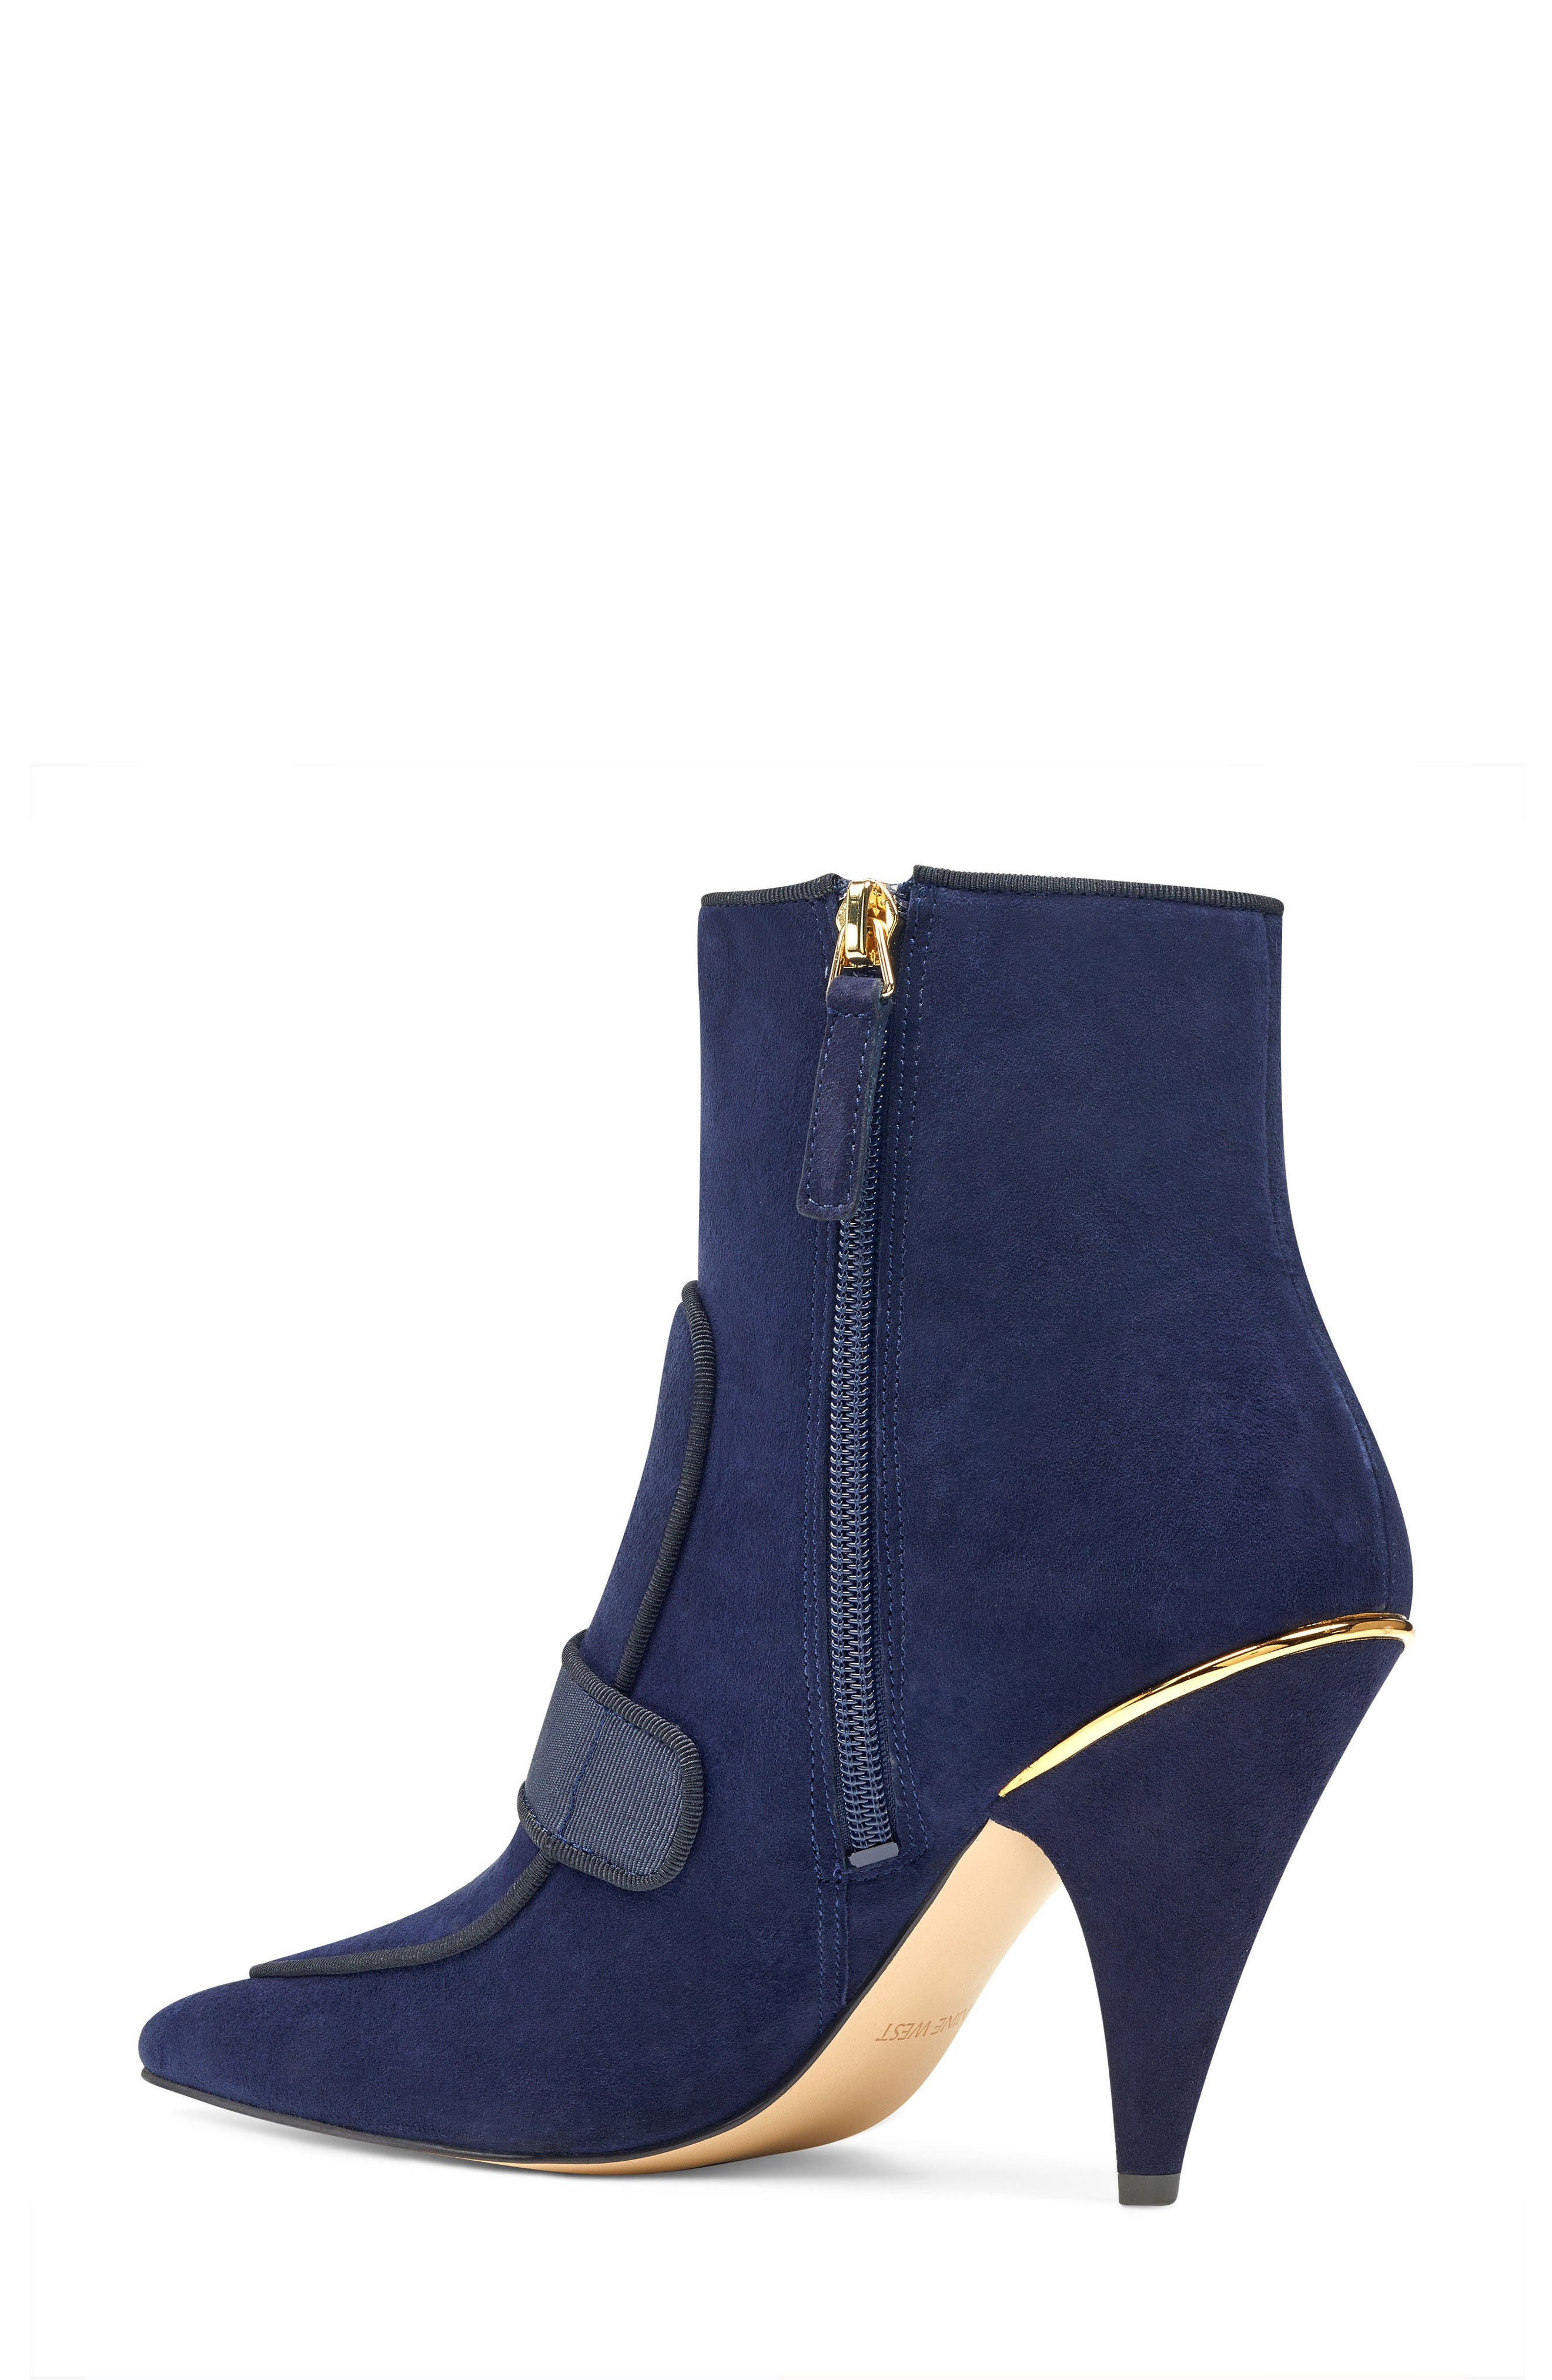 Westham Pointy Toe Bootie,                             Alternate thumbnail 4, color,